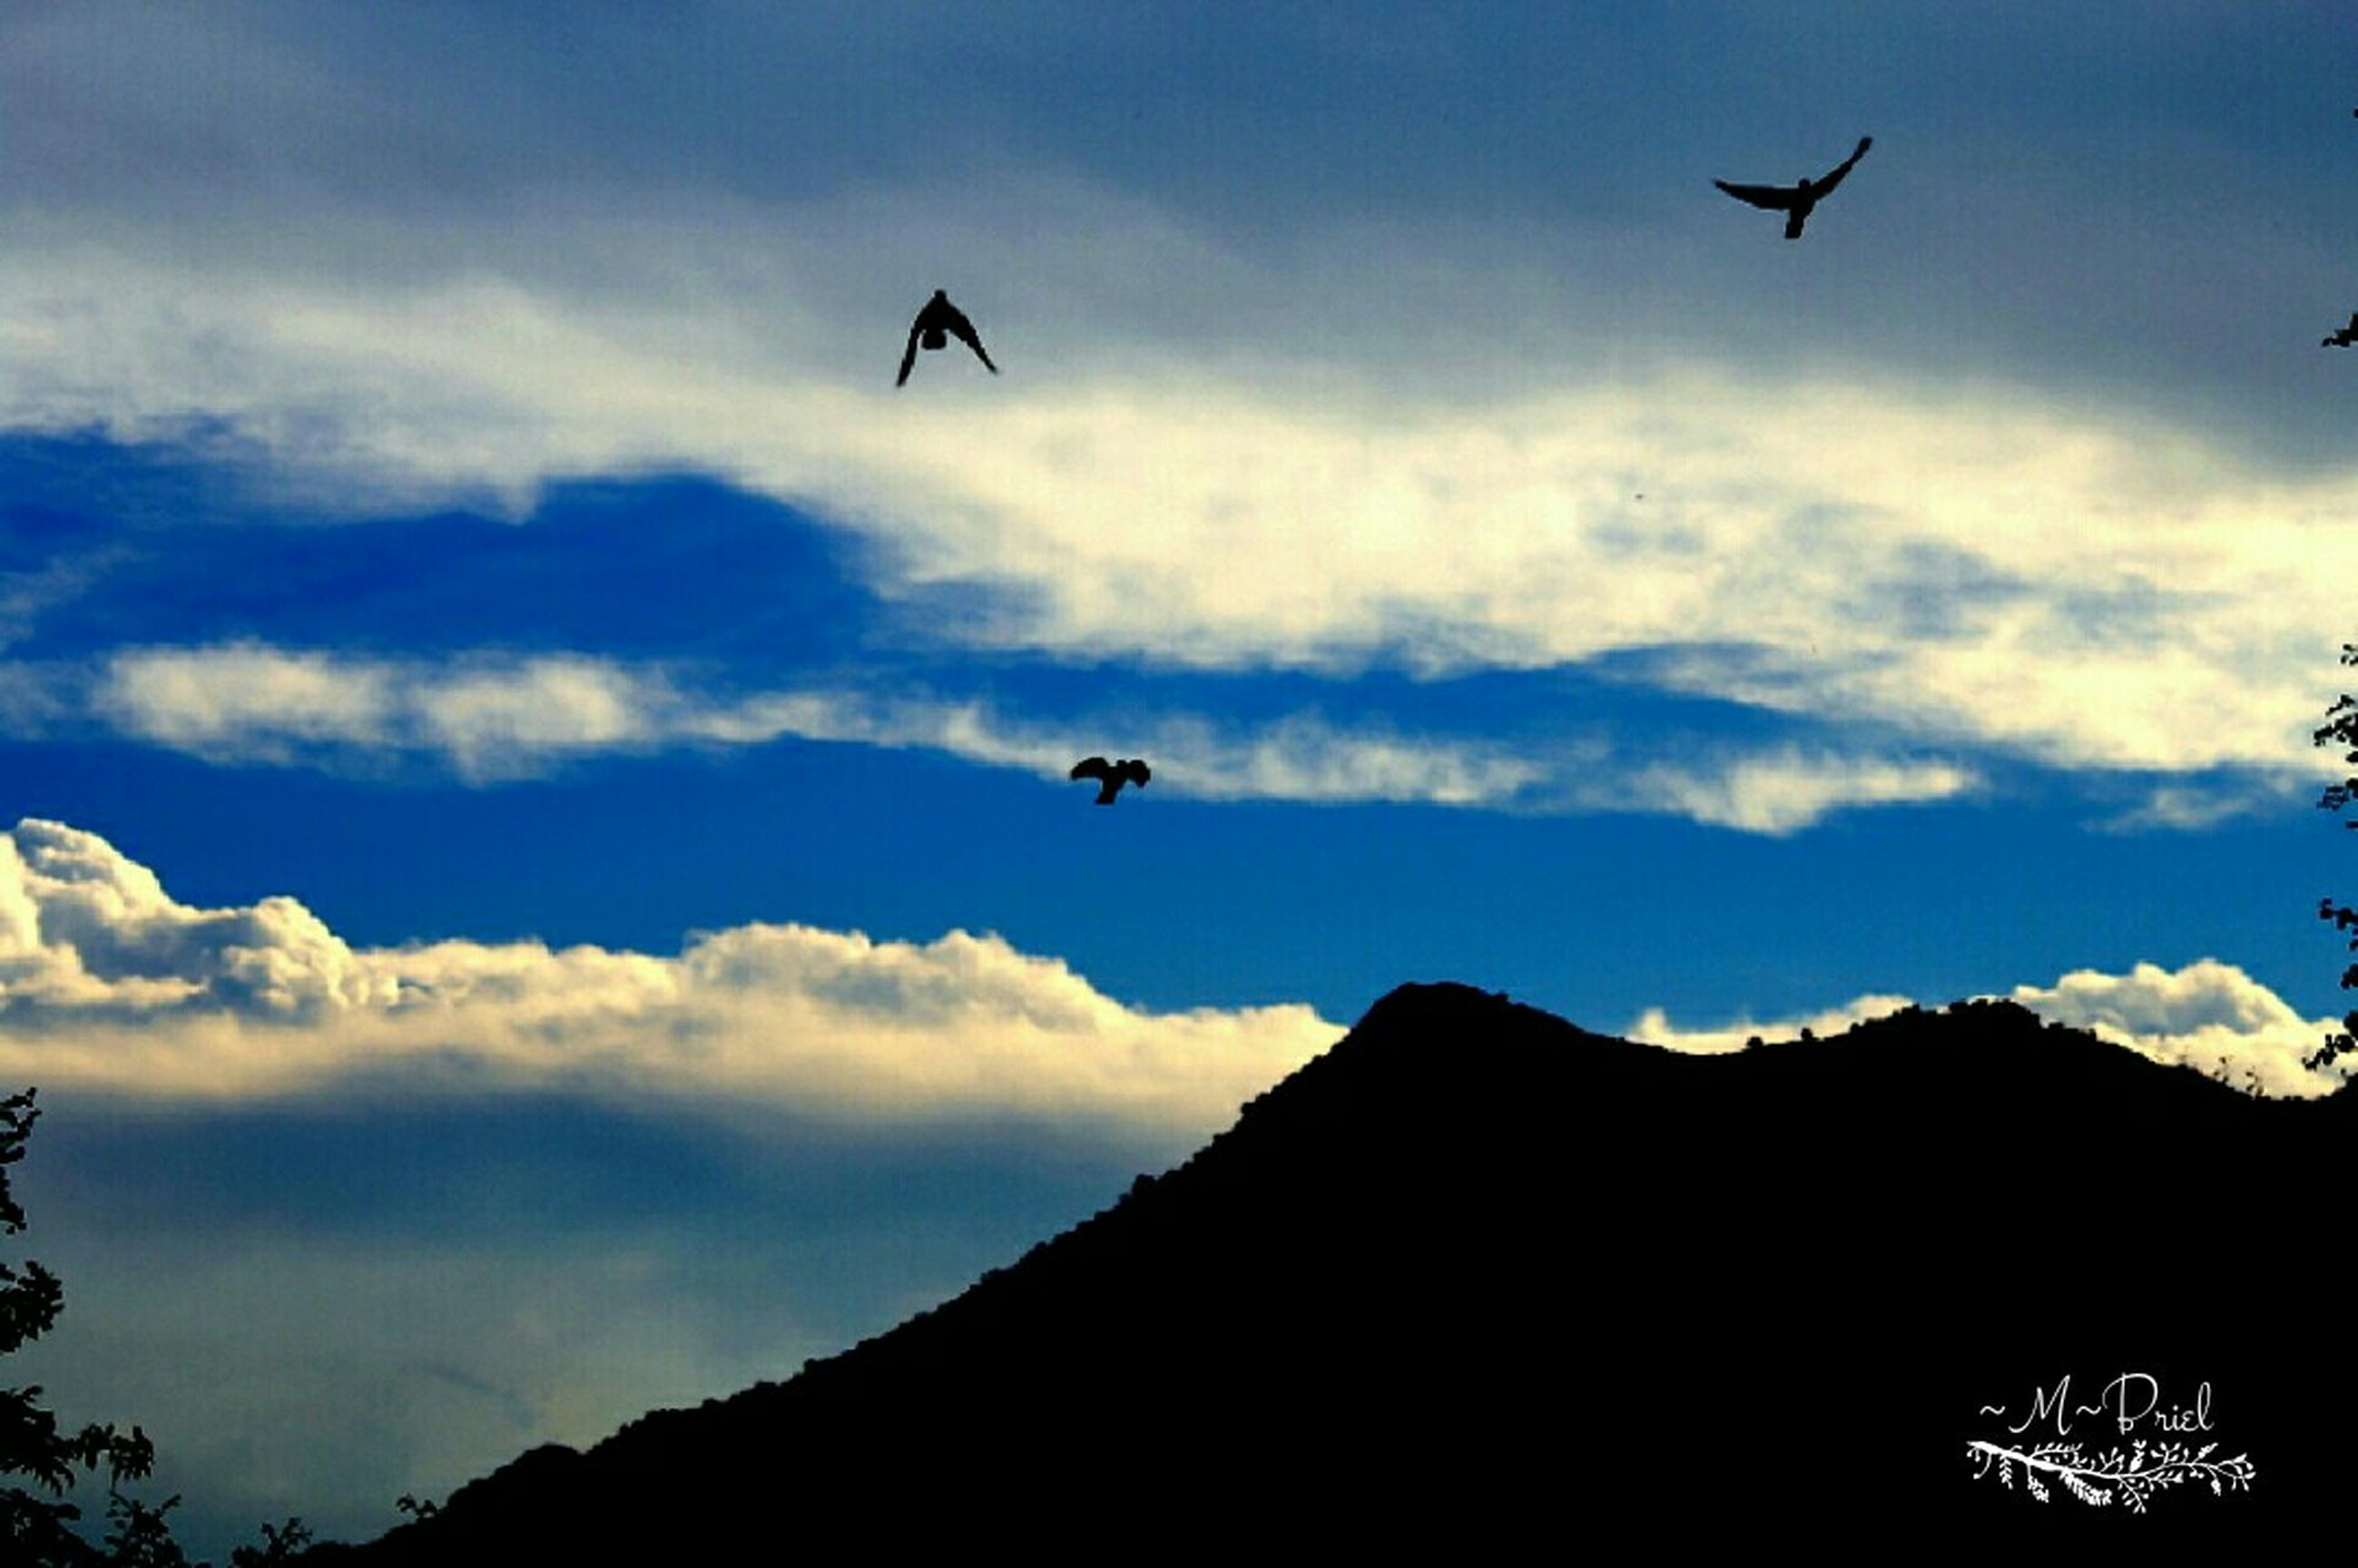 flying, mid-air, bird, low angle view, sky, airplane, animal themes, air vehicle, spread wings, transportation, animals in the wild, cloud - sky, wildlife, mode of transport, built structure, cloud, on the move, blue, architecture, building exterior